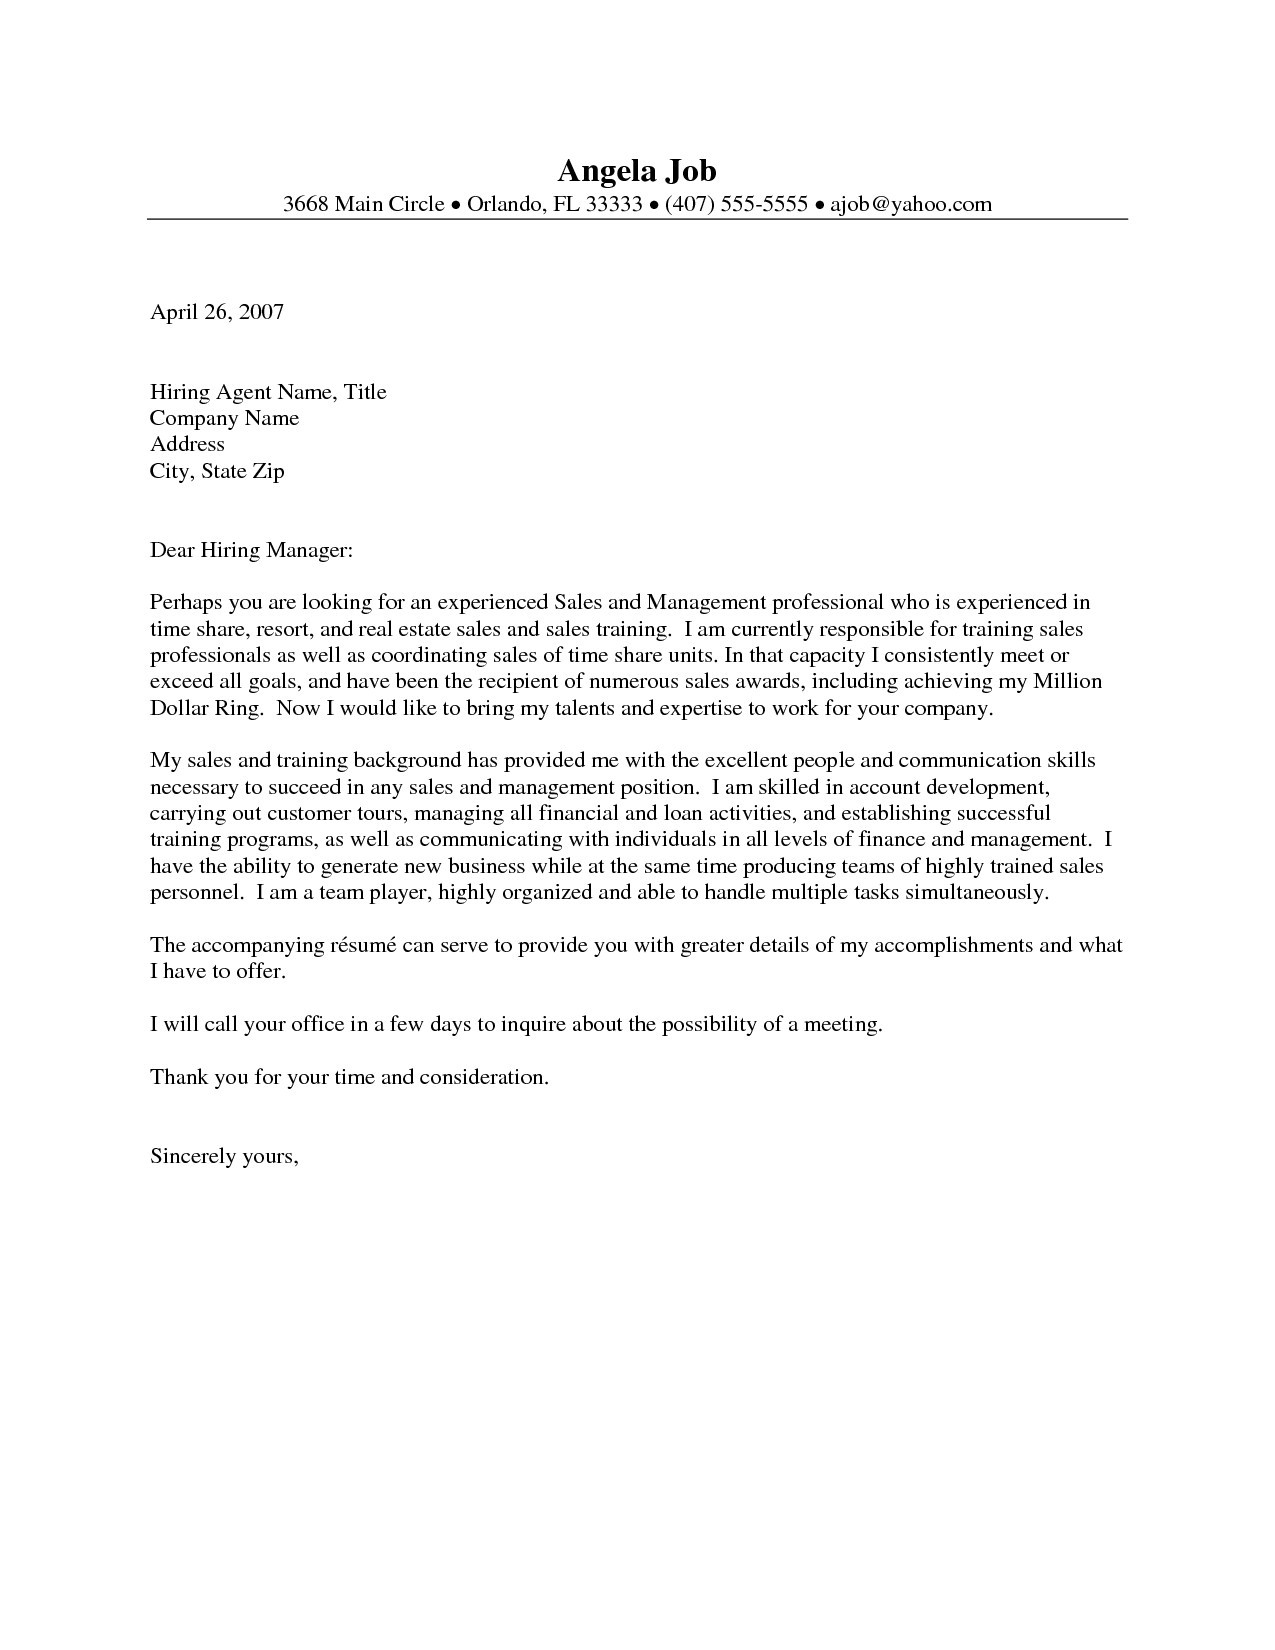 real estate introduction letter template Collection-Cover Letter Sample for Real Estate Job New Sample Cover Letter for Real Estate Job Valid 2-a